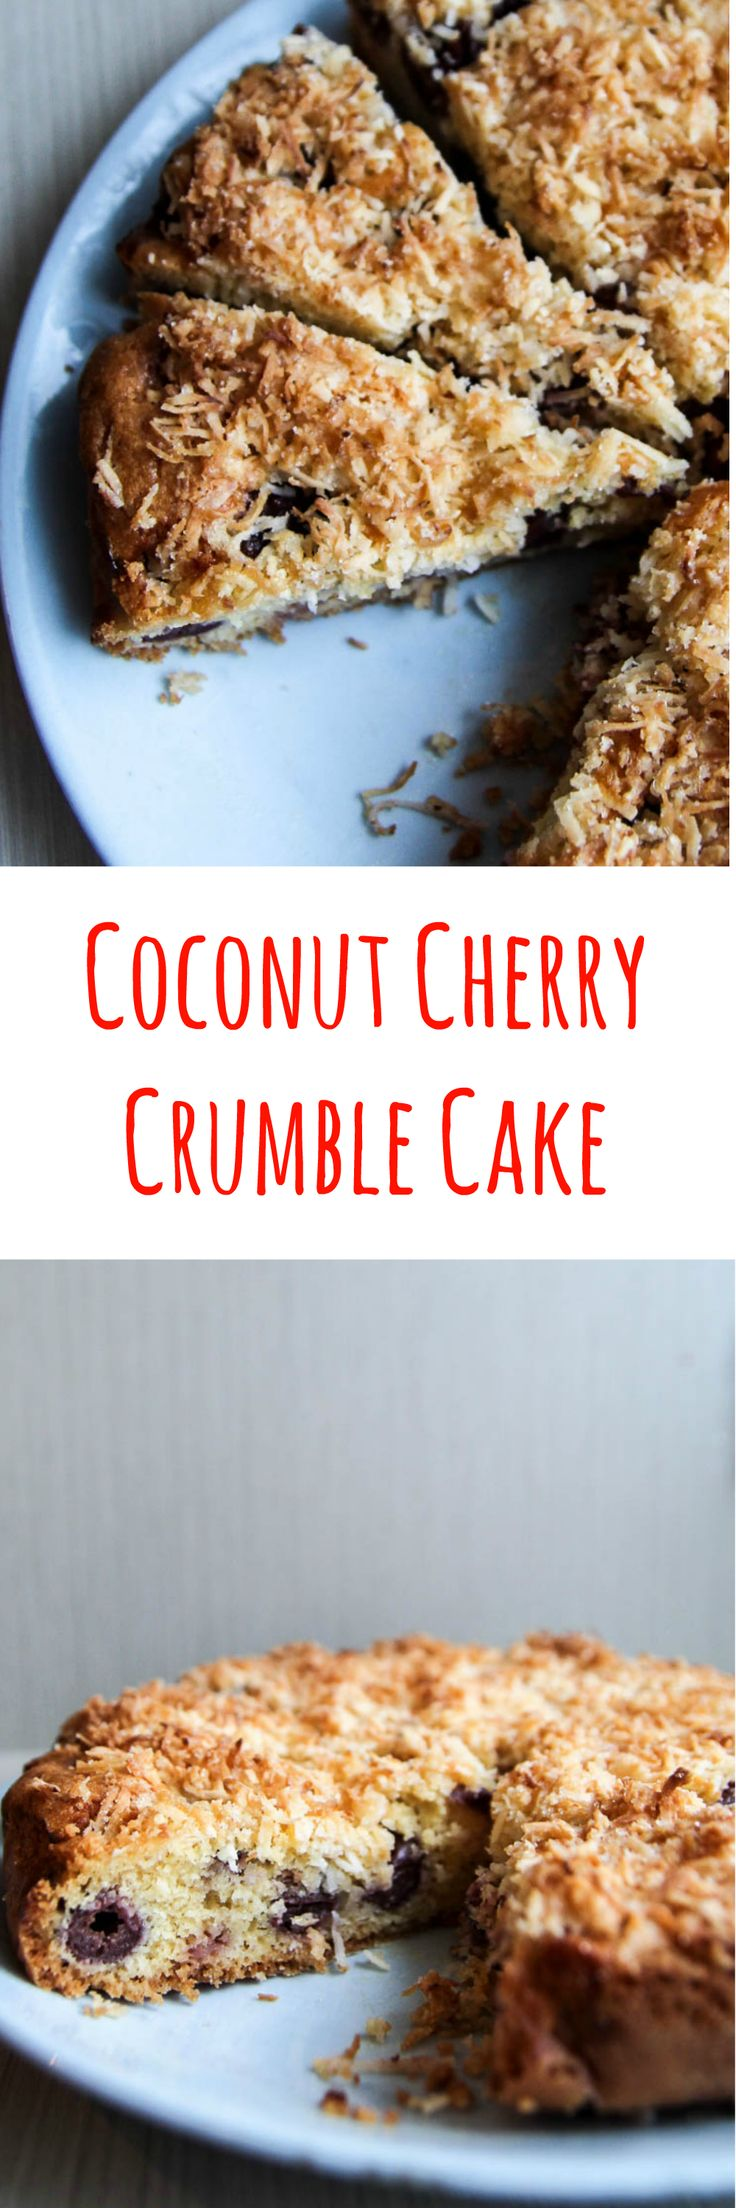 Cherry Coconut Cake Recipe Delicious moist coconut cherry crumble cake recipe which is really easy to make. One piece is never enough. Get the recipe now.